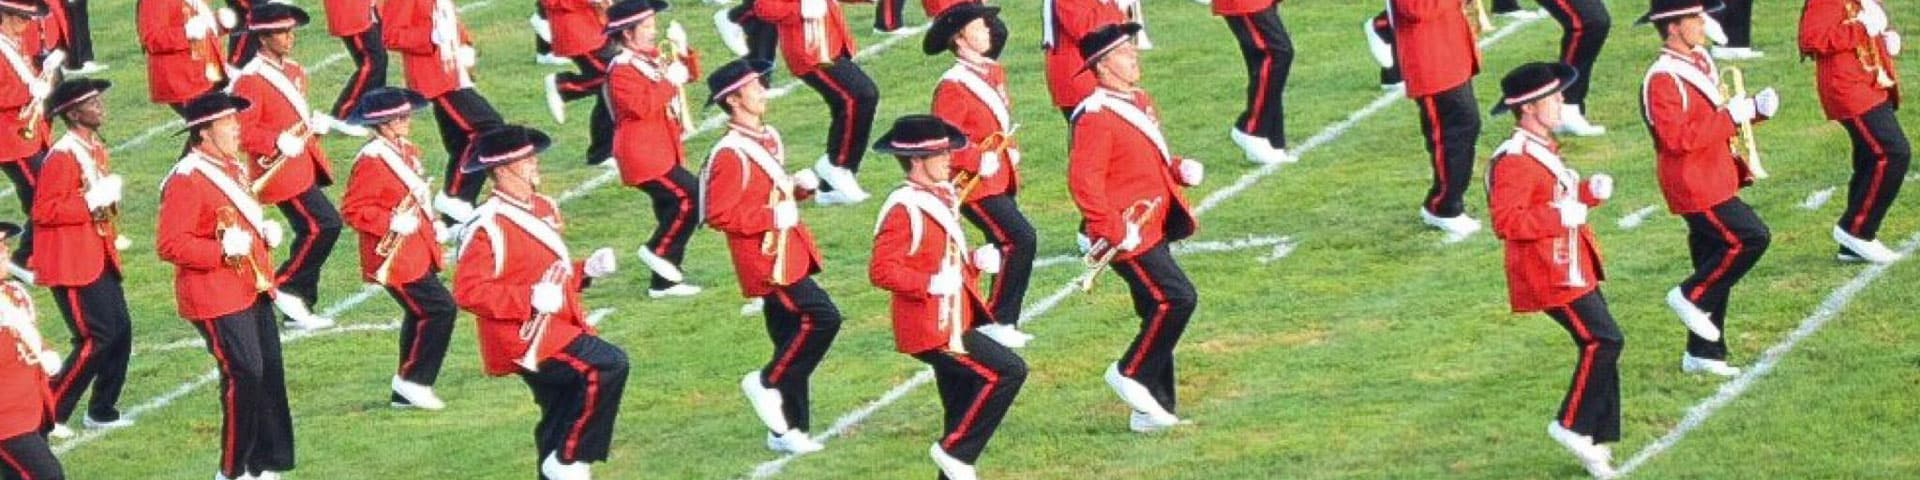 Easton Area High School Marching Band members on the field